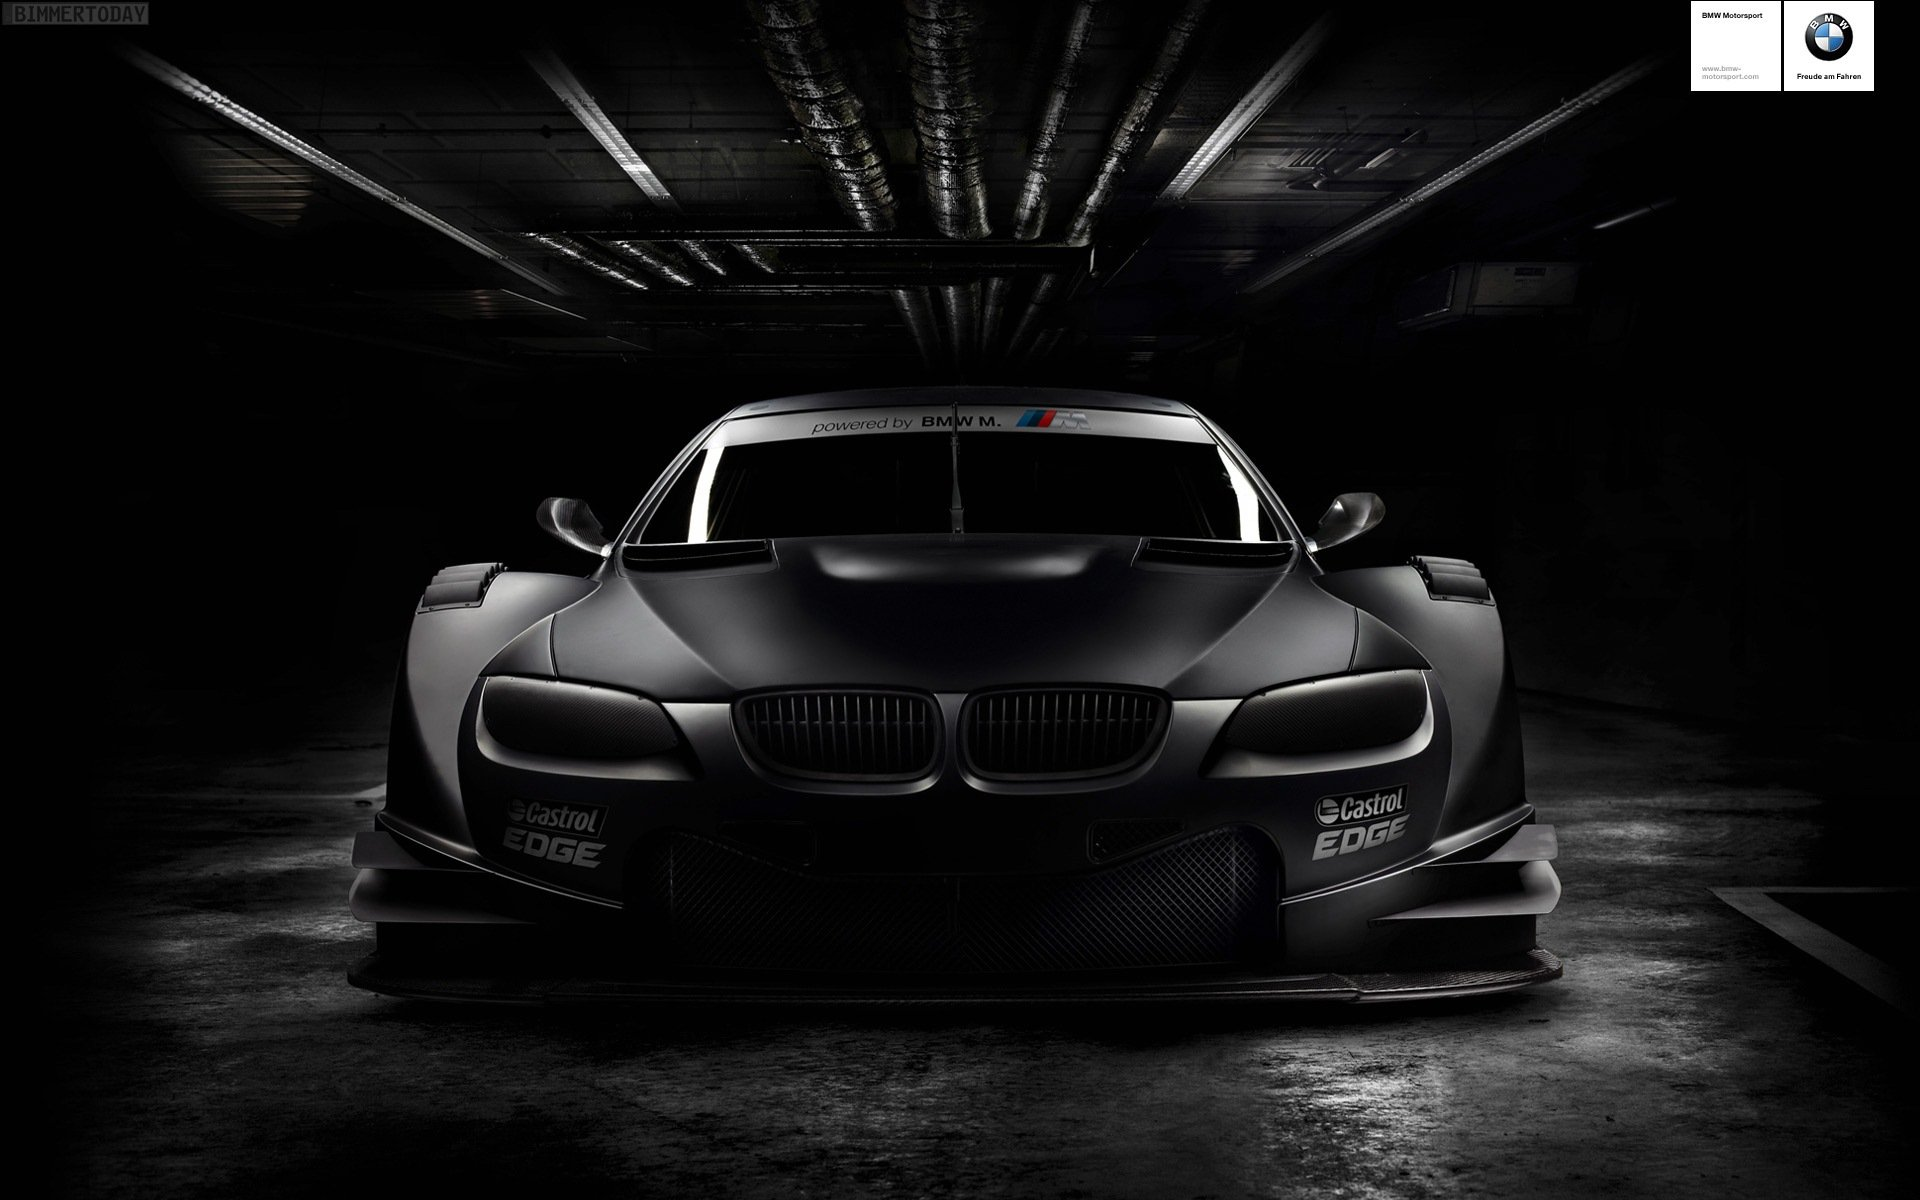 download BMW Wallpaper Android Phone Download Wallpaper with 1920x1200